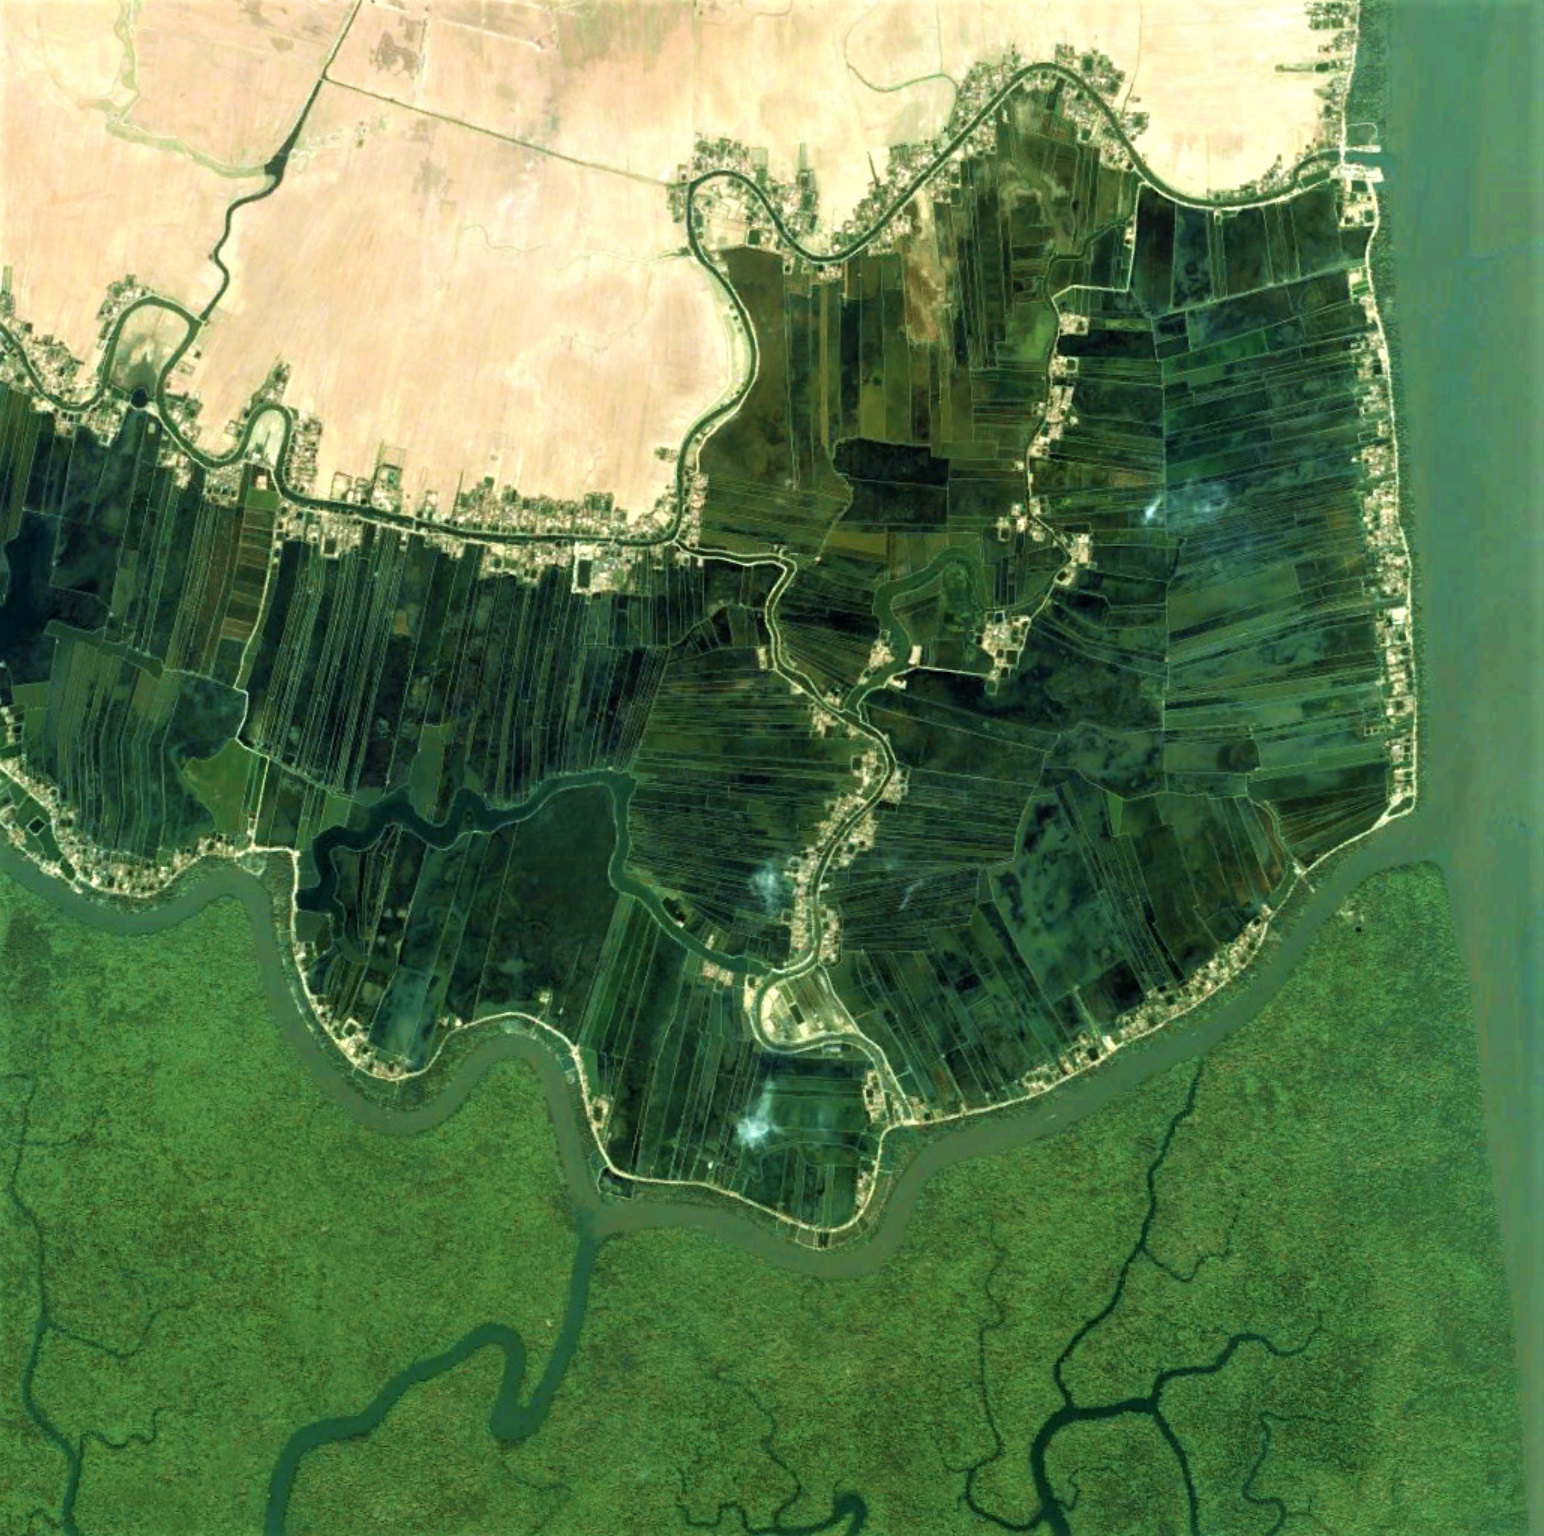 Shrimp farms and Sundarban's mangrove forest divided by protective river line. Image width: 5 kilometers